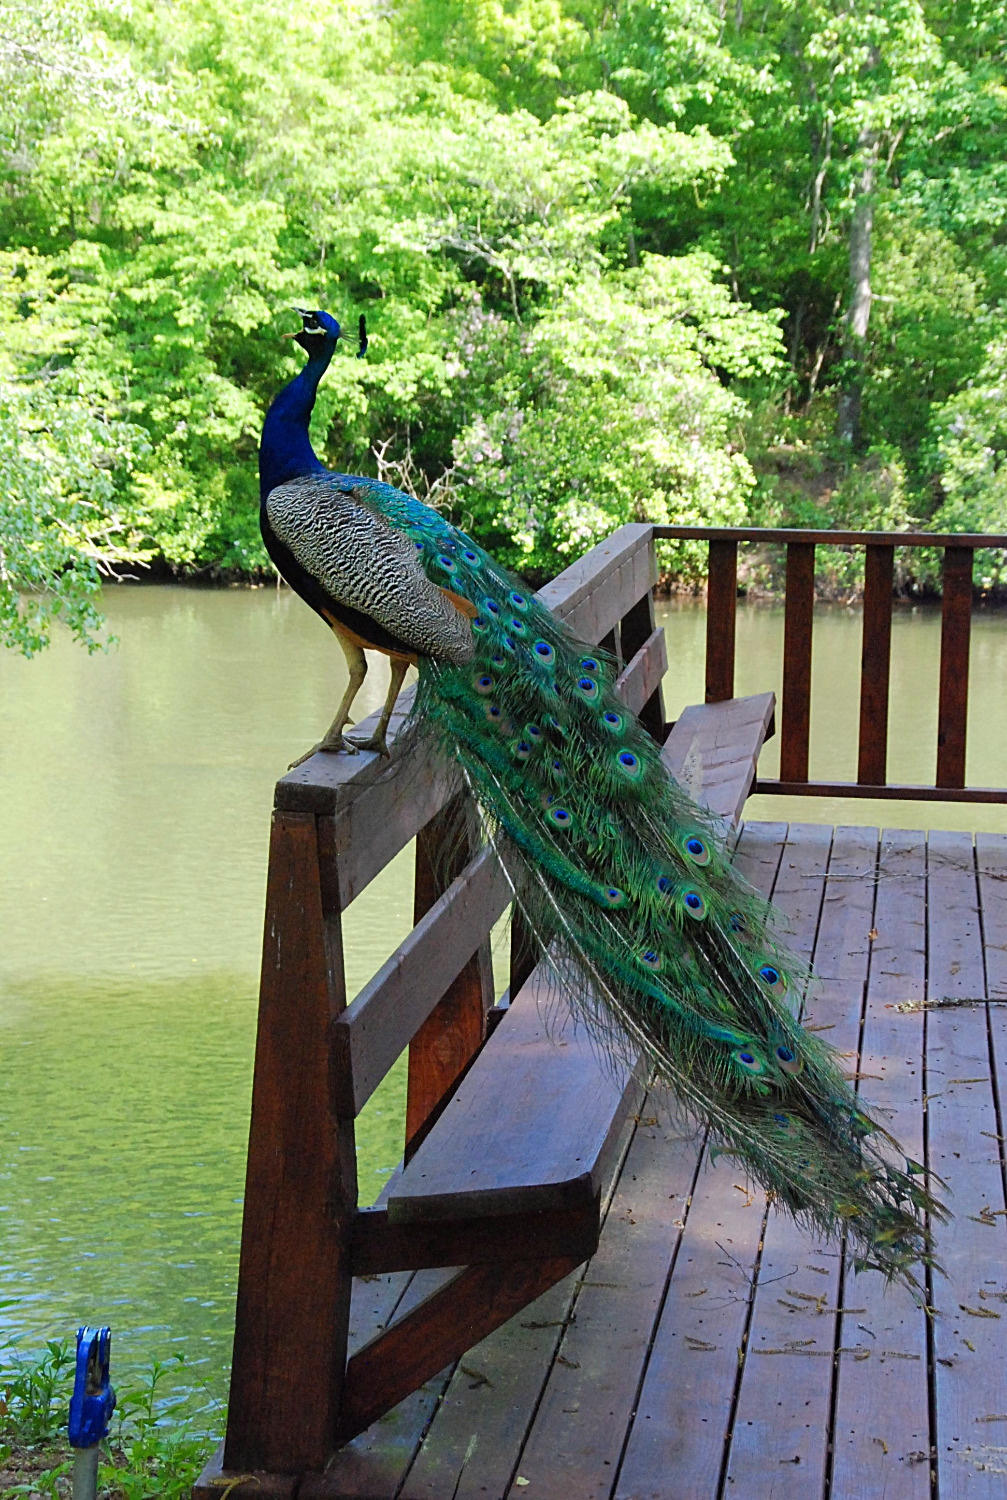 Peacock hatched at River Park